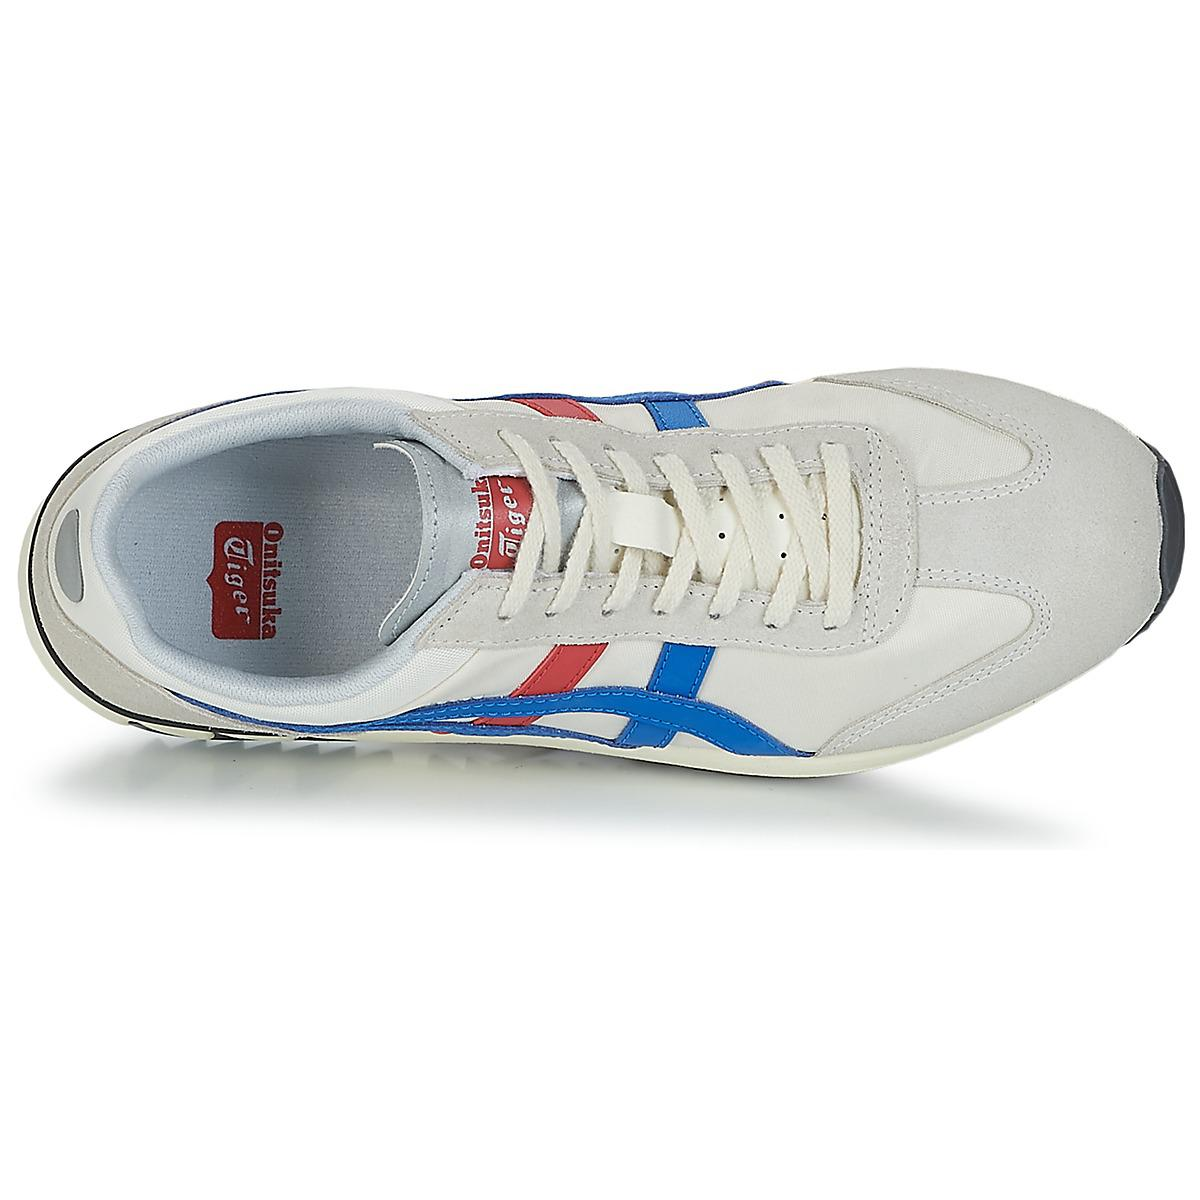 Onitsuka Tiger California 78 Ex Shoes (trainers) in White